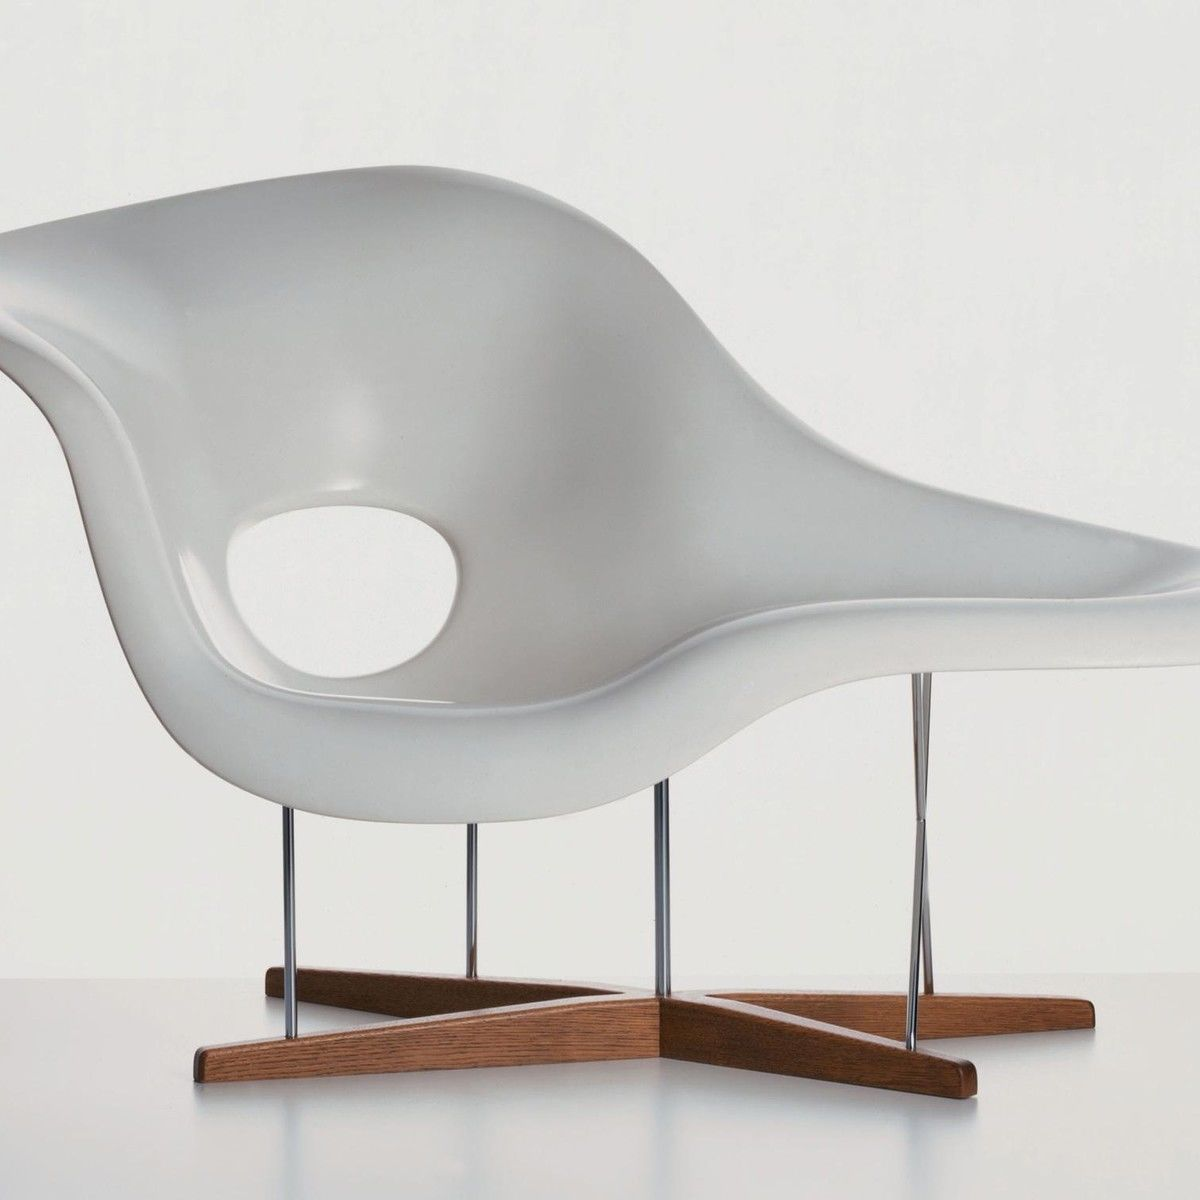 La chaise eames chaise longue vitra for Chaise eames